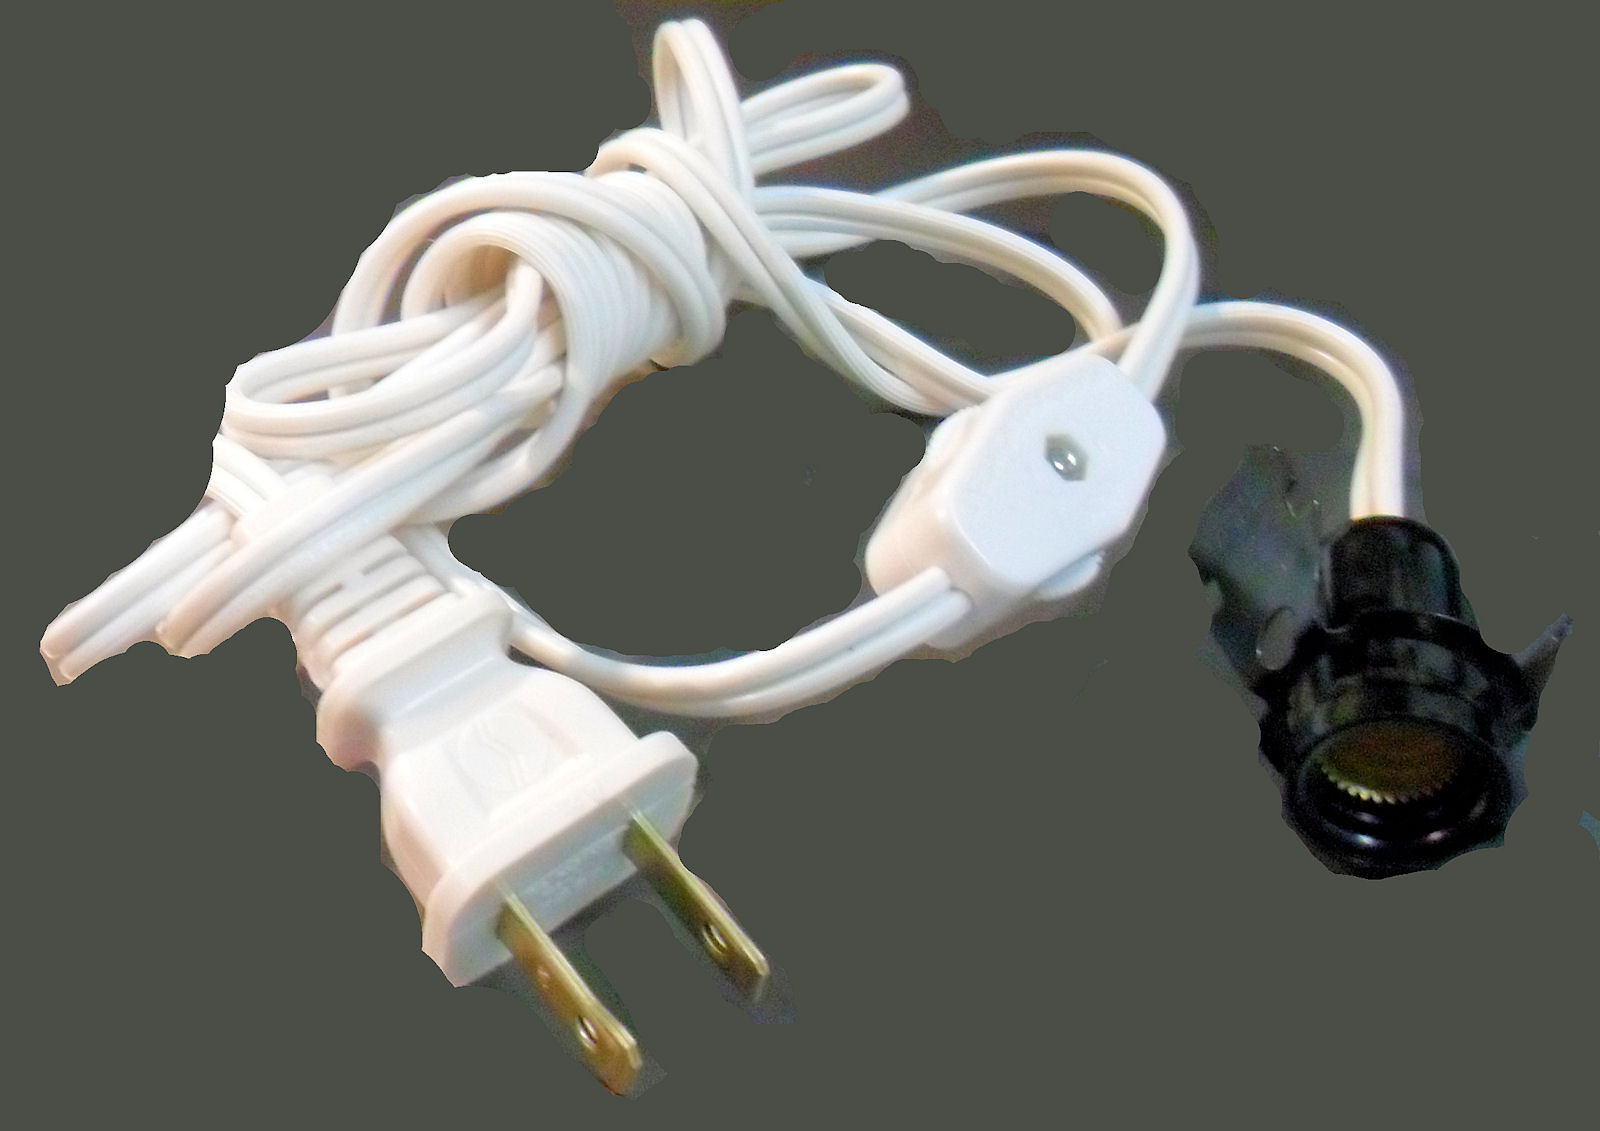 6\' WHT CORD/ SNAP-IN SKT W/SWITCH SPT-1, Texas Lamp Parts